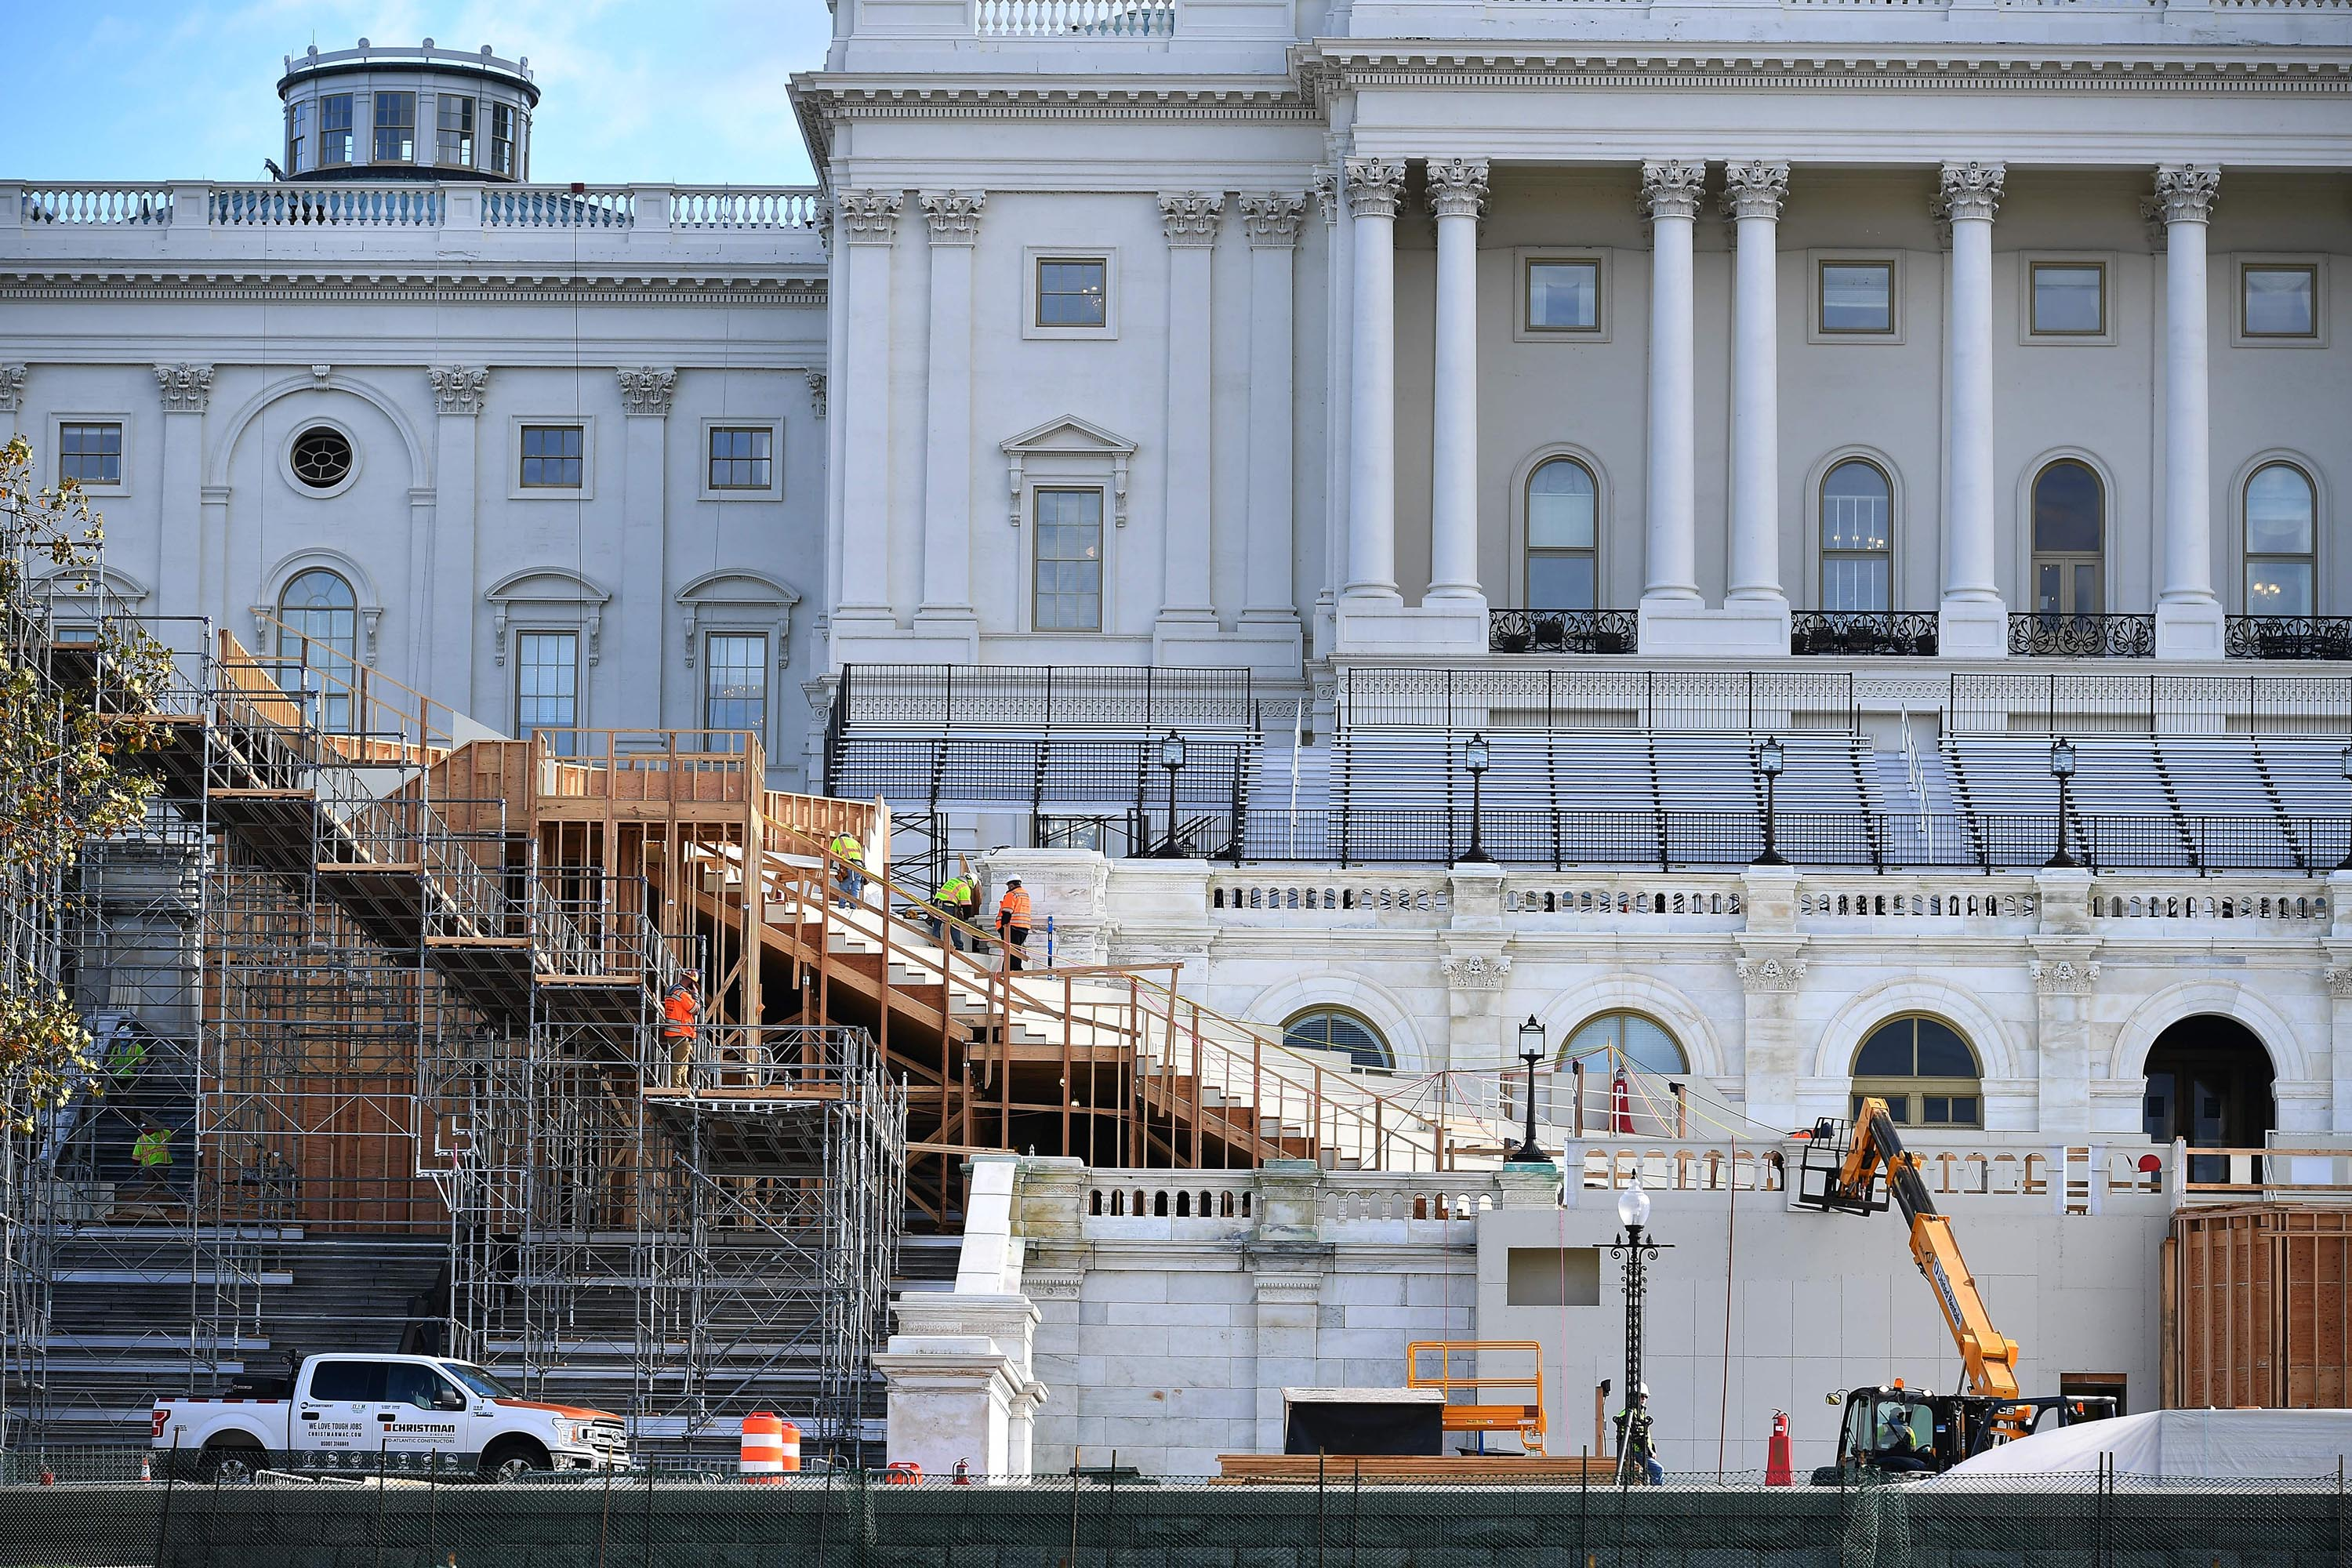 Workers construct the stage for the presidential inauguration at the US Capitol in Washington, DC, on December 1, 2020.